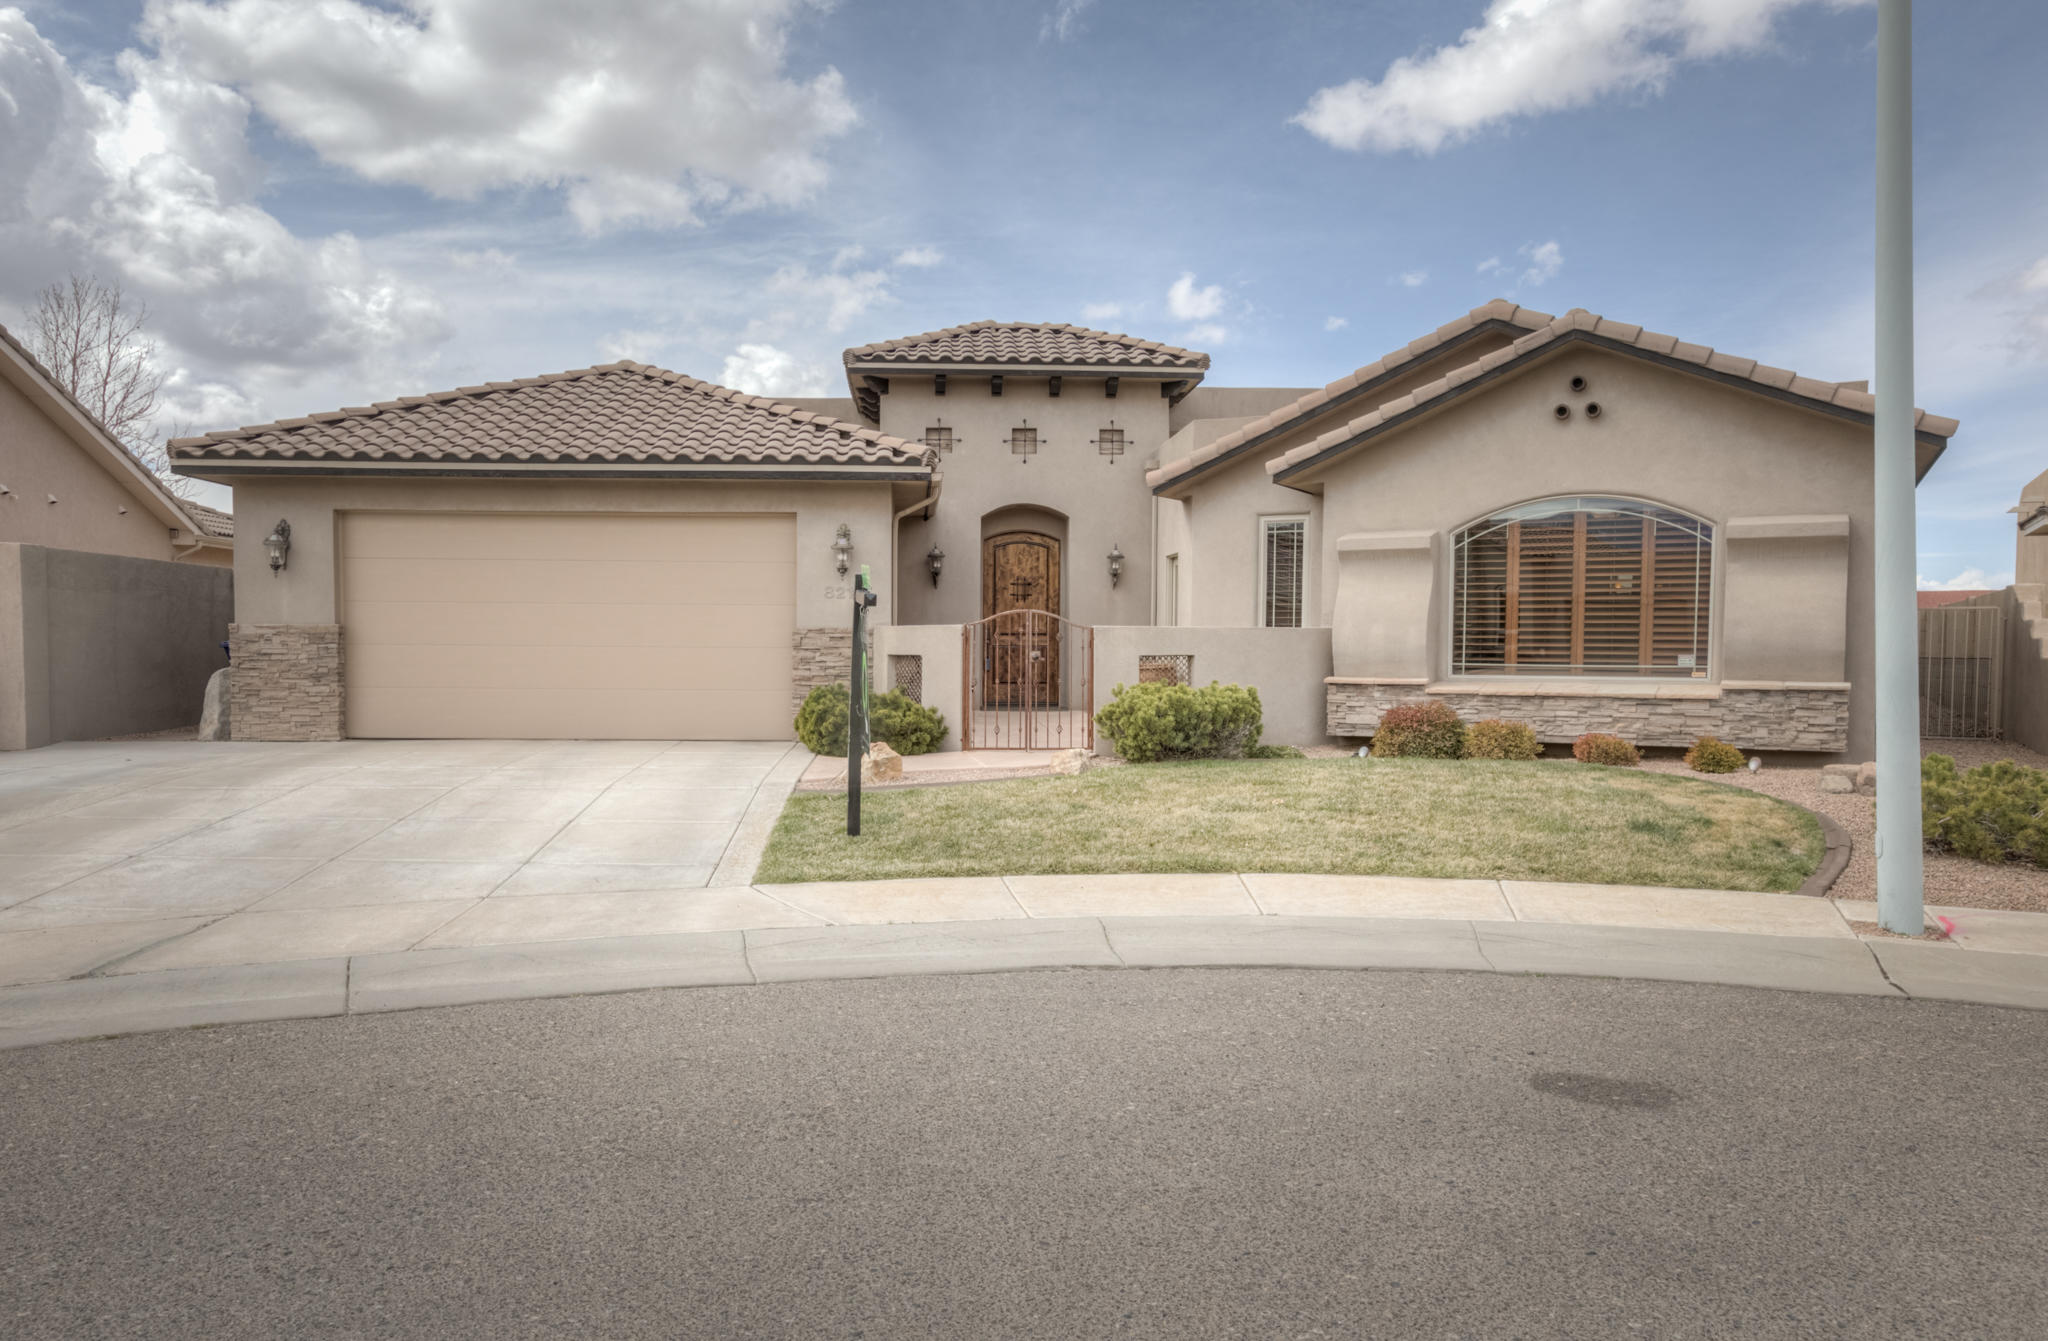 This 4 bed, 3 bath home boasts 3275 sqft, a spacious open floorpan with lots of upgrades! Located in a quiet cut da sac lot, this single story custom home has a private court yard entrance with amazing curb appeal. Once inside you're greeted with a spacious entry way, a great room with vaulted ceilings. Open living area, crown molding and a custom built entertainment center. Overlooking the living room is the chefs kitchen equipped with built in stainless range, hood, massive granite kitchen island and beautiful staggered wood cabinetry. Off the open dining room is a wet bar. The large master suite has patio entrance with a separate bath and shower. Guest bedroom has jack and jill bath. Guest bed also has a its own bathroom. Huge laundry with custom cabinets and granite countertops.